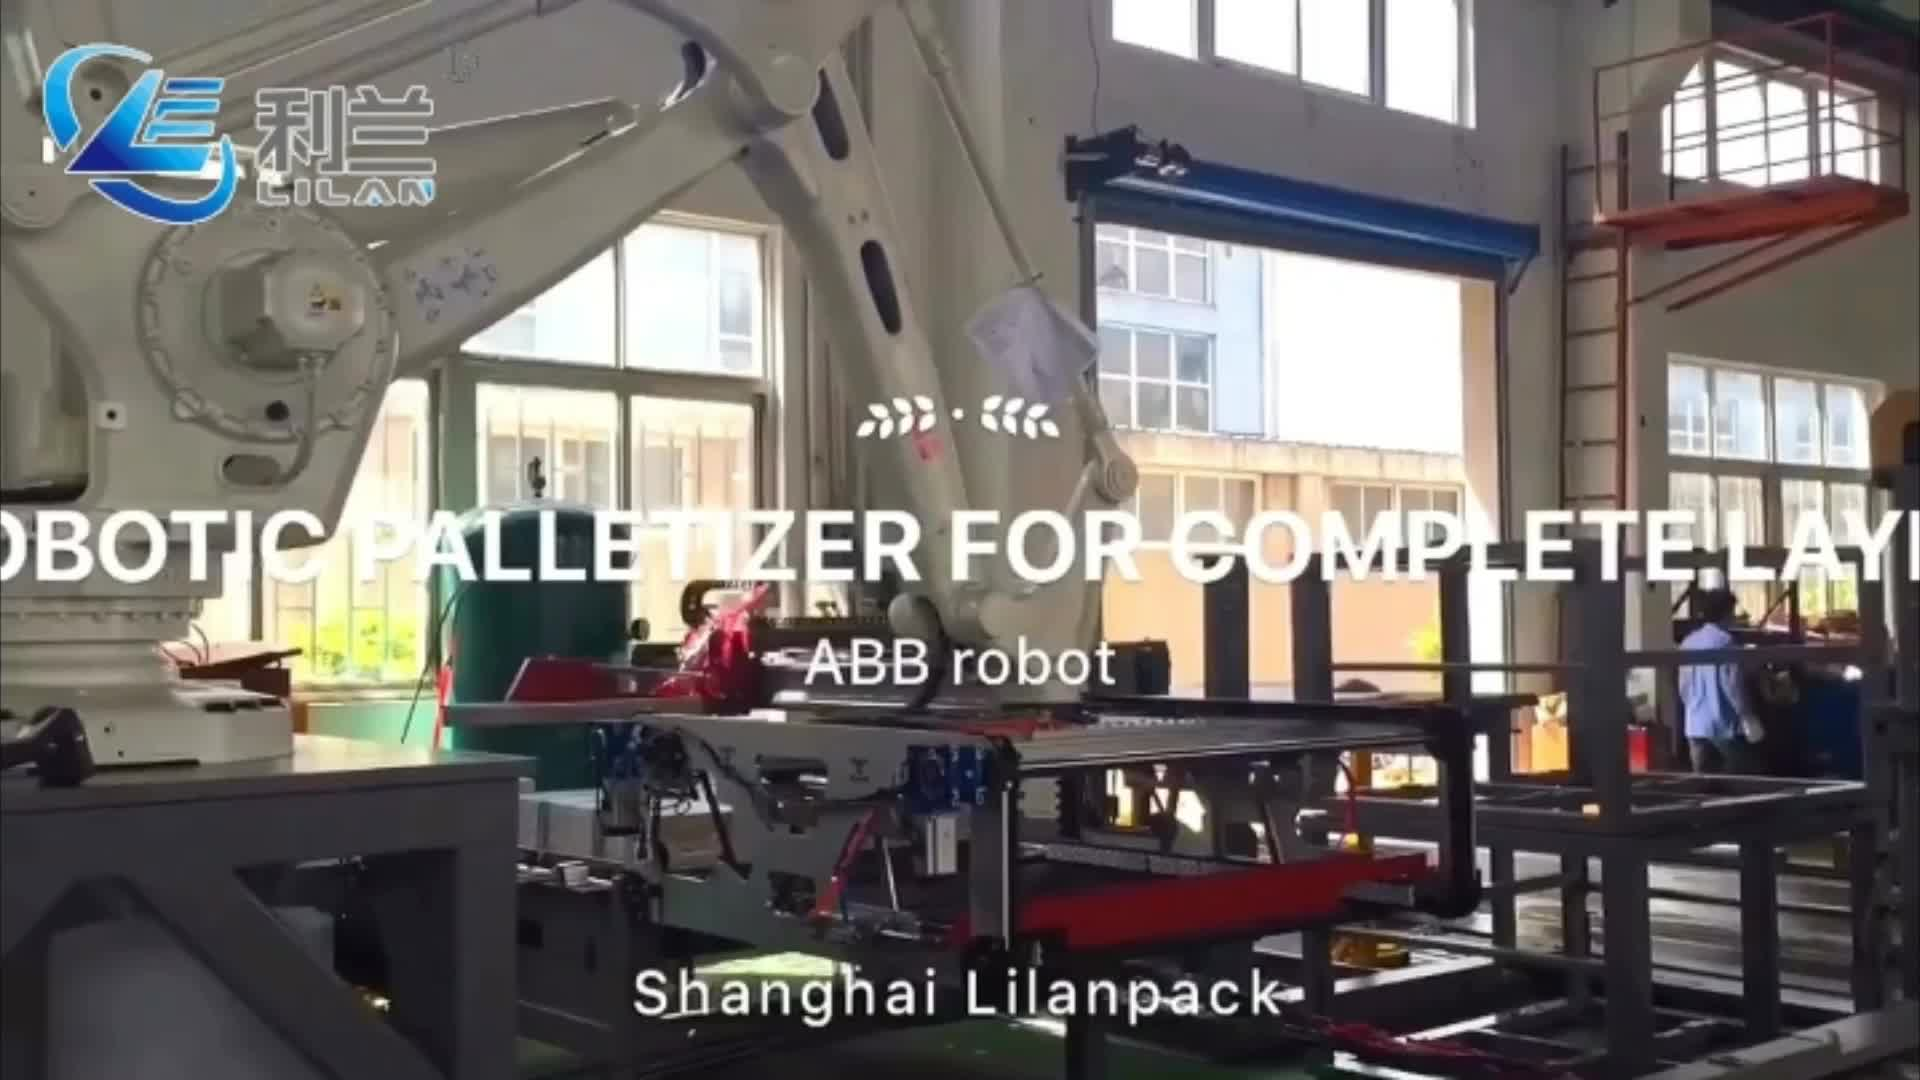 Security Intelligence automat robot palletizer per la birra e industria delle bevande con lattine